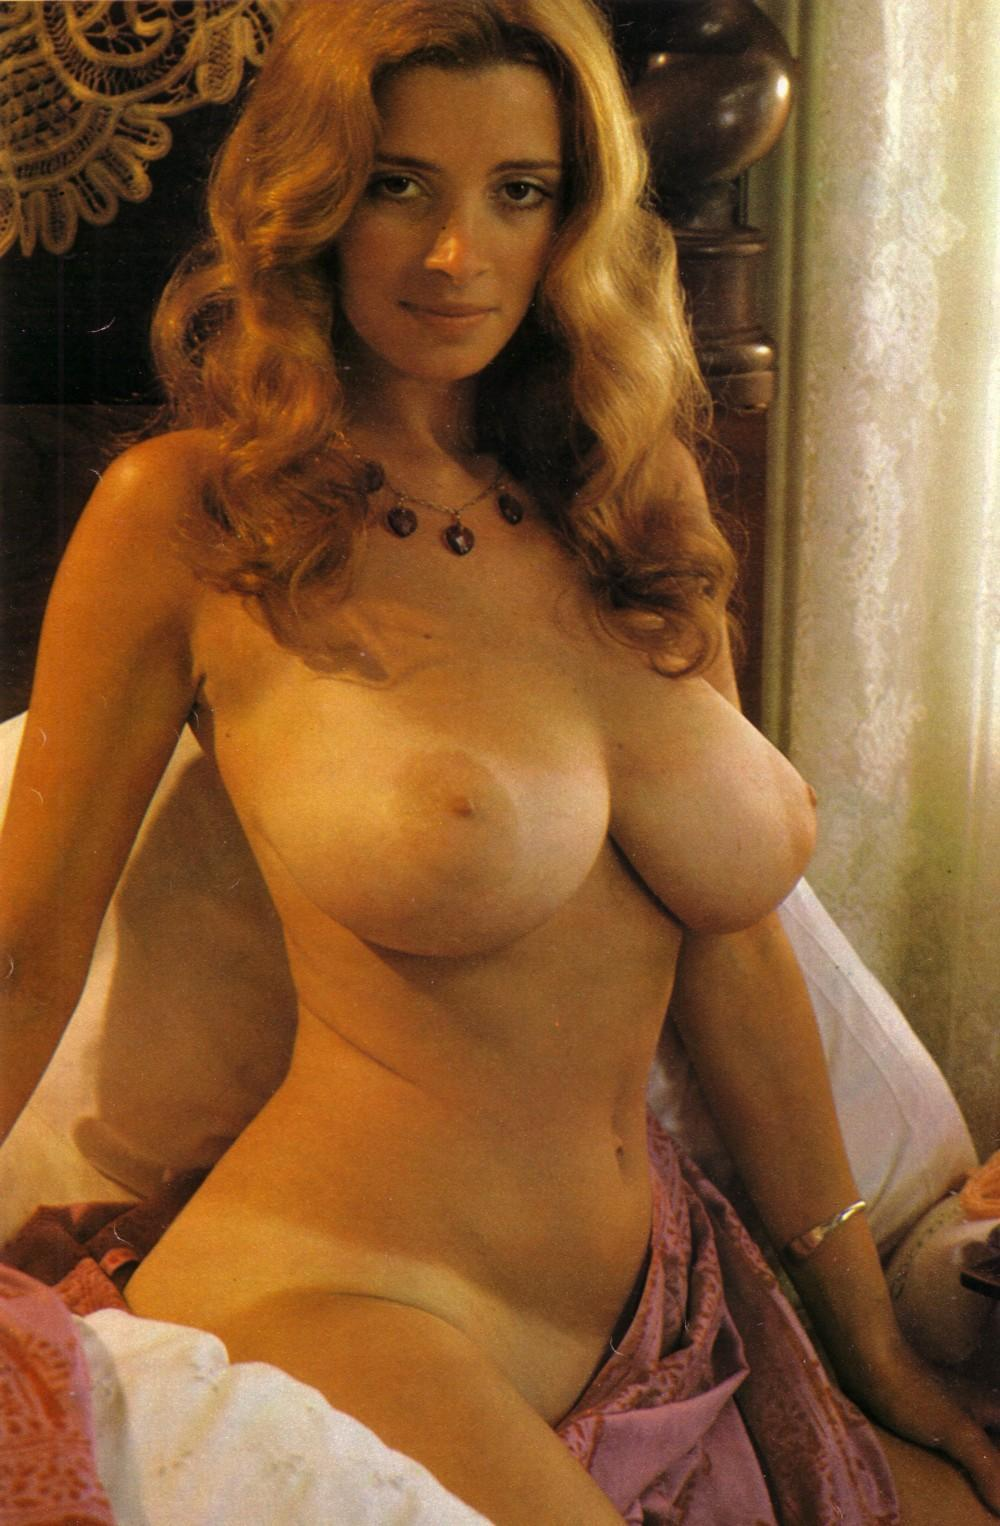 nude Lark sex tape voorhies